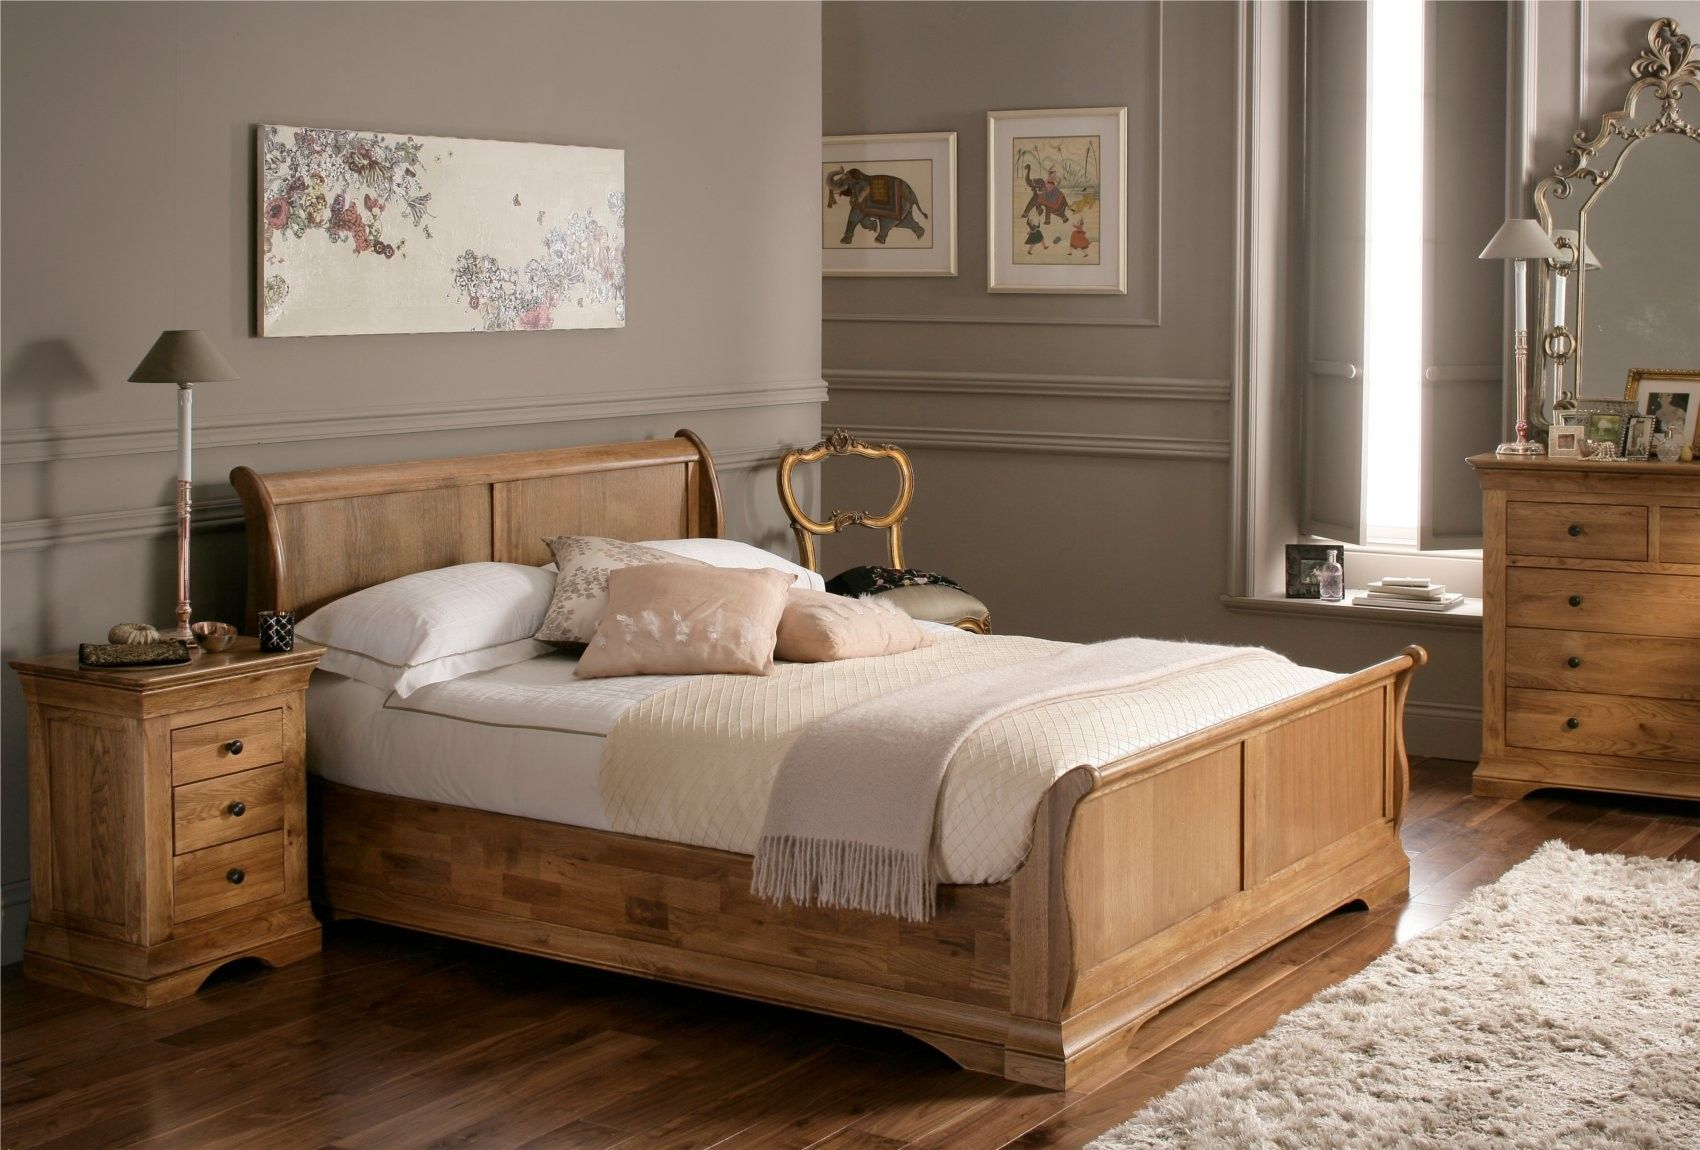 Bedroom Decorating Ideas With Pine Furniture pinsaver on bedroom | pinterest | wooden sleigh bed, bedrooms